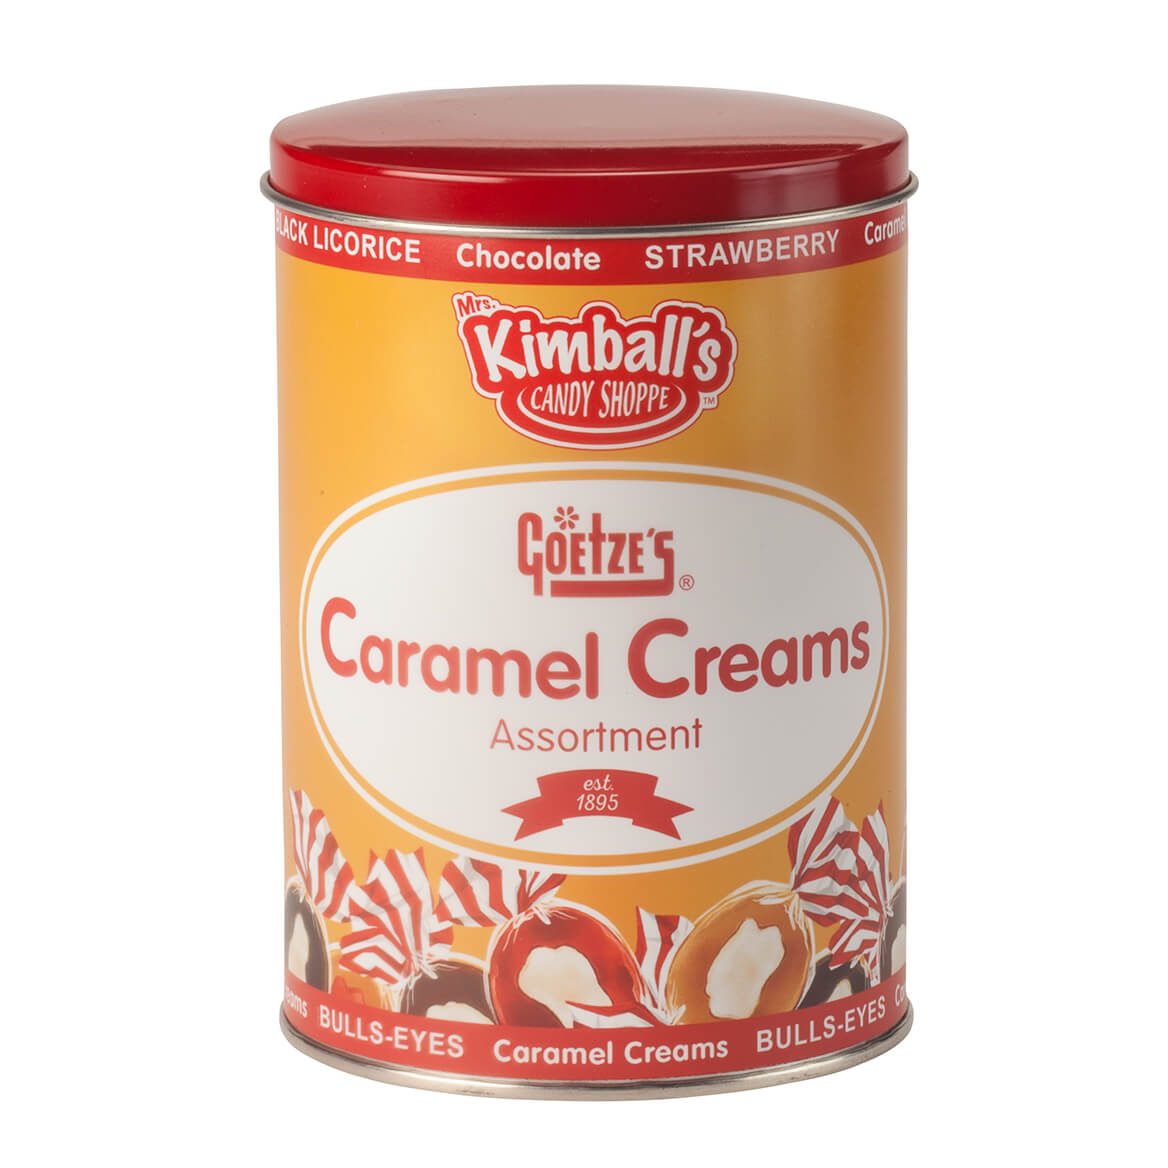 Goetze's Caramel Creams Tin by Mrs. Kimball's Candy ShoppeTM